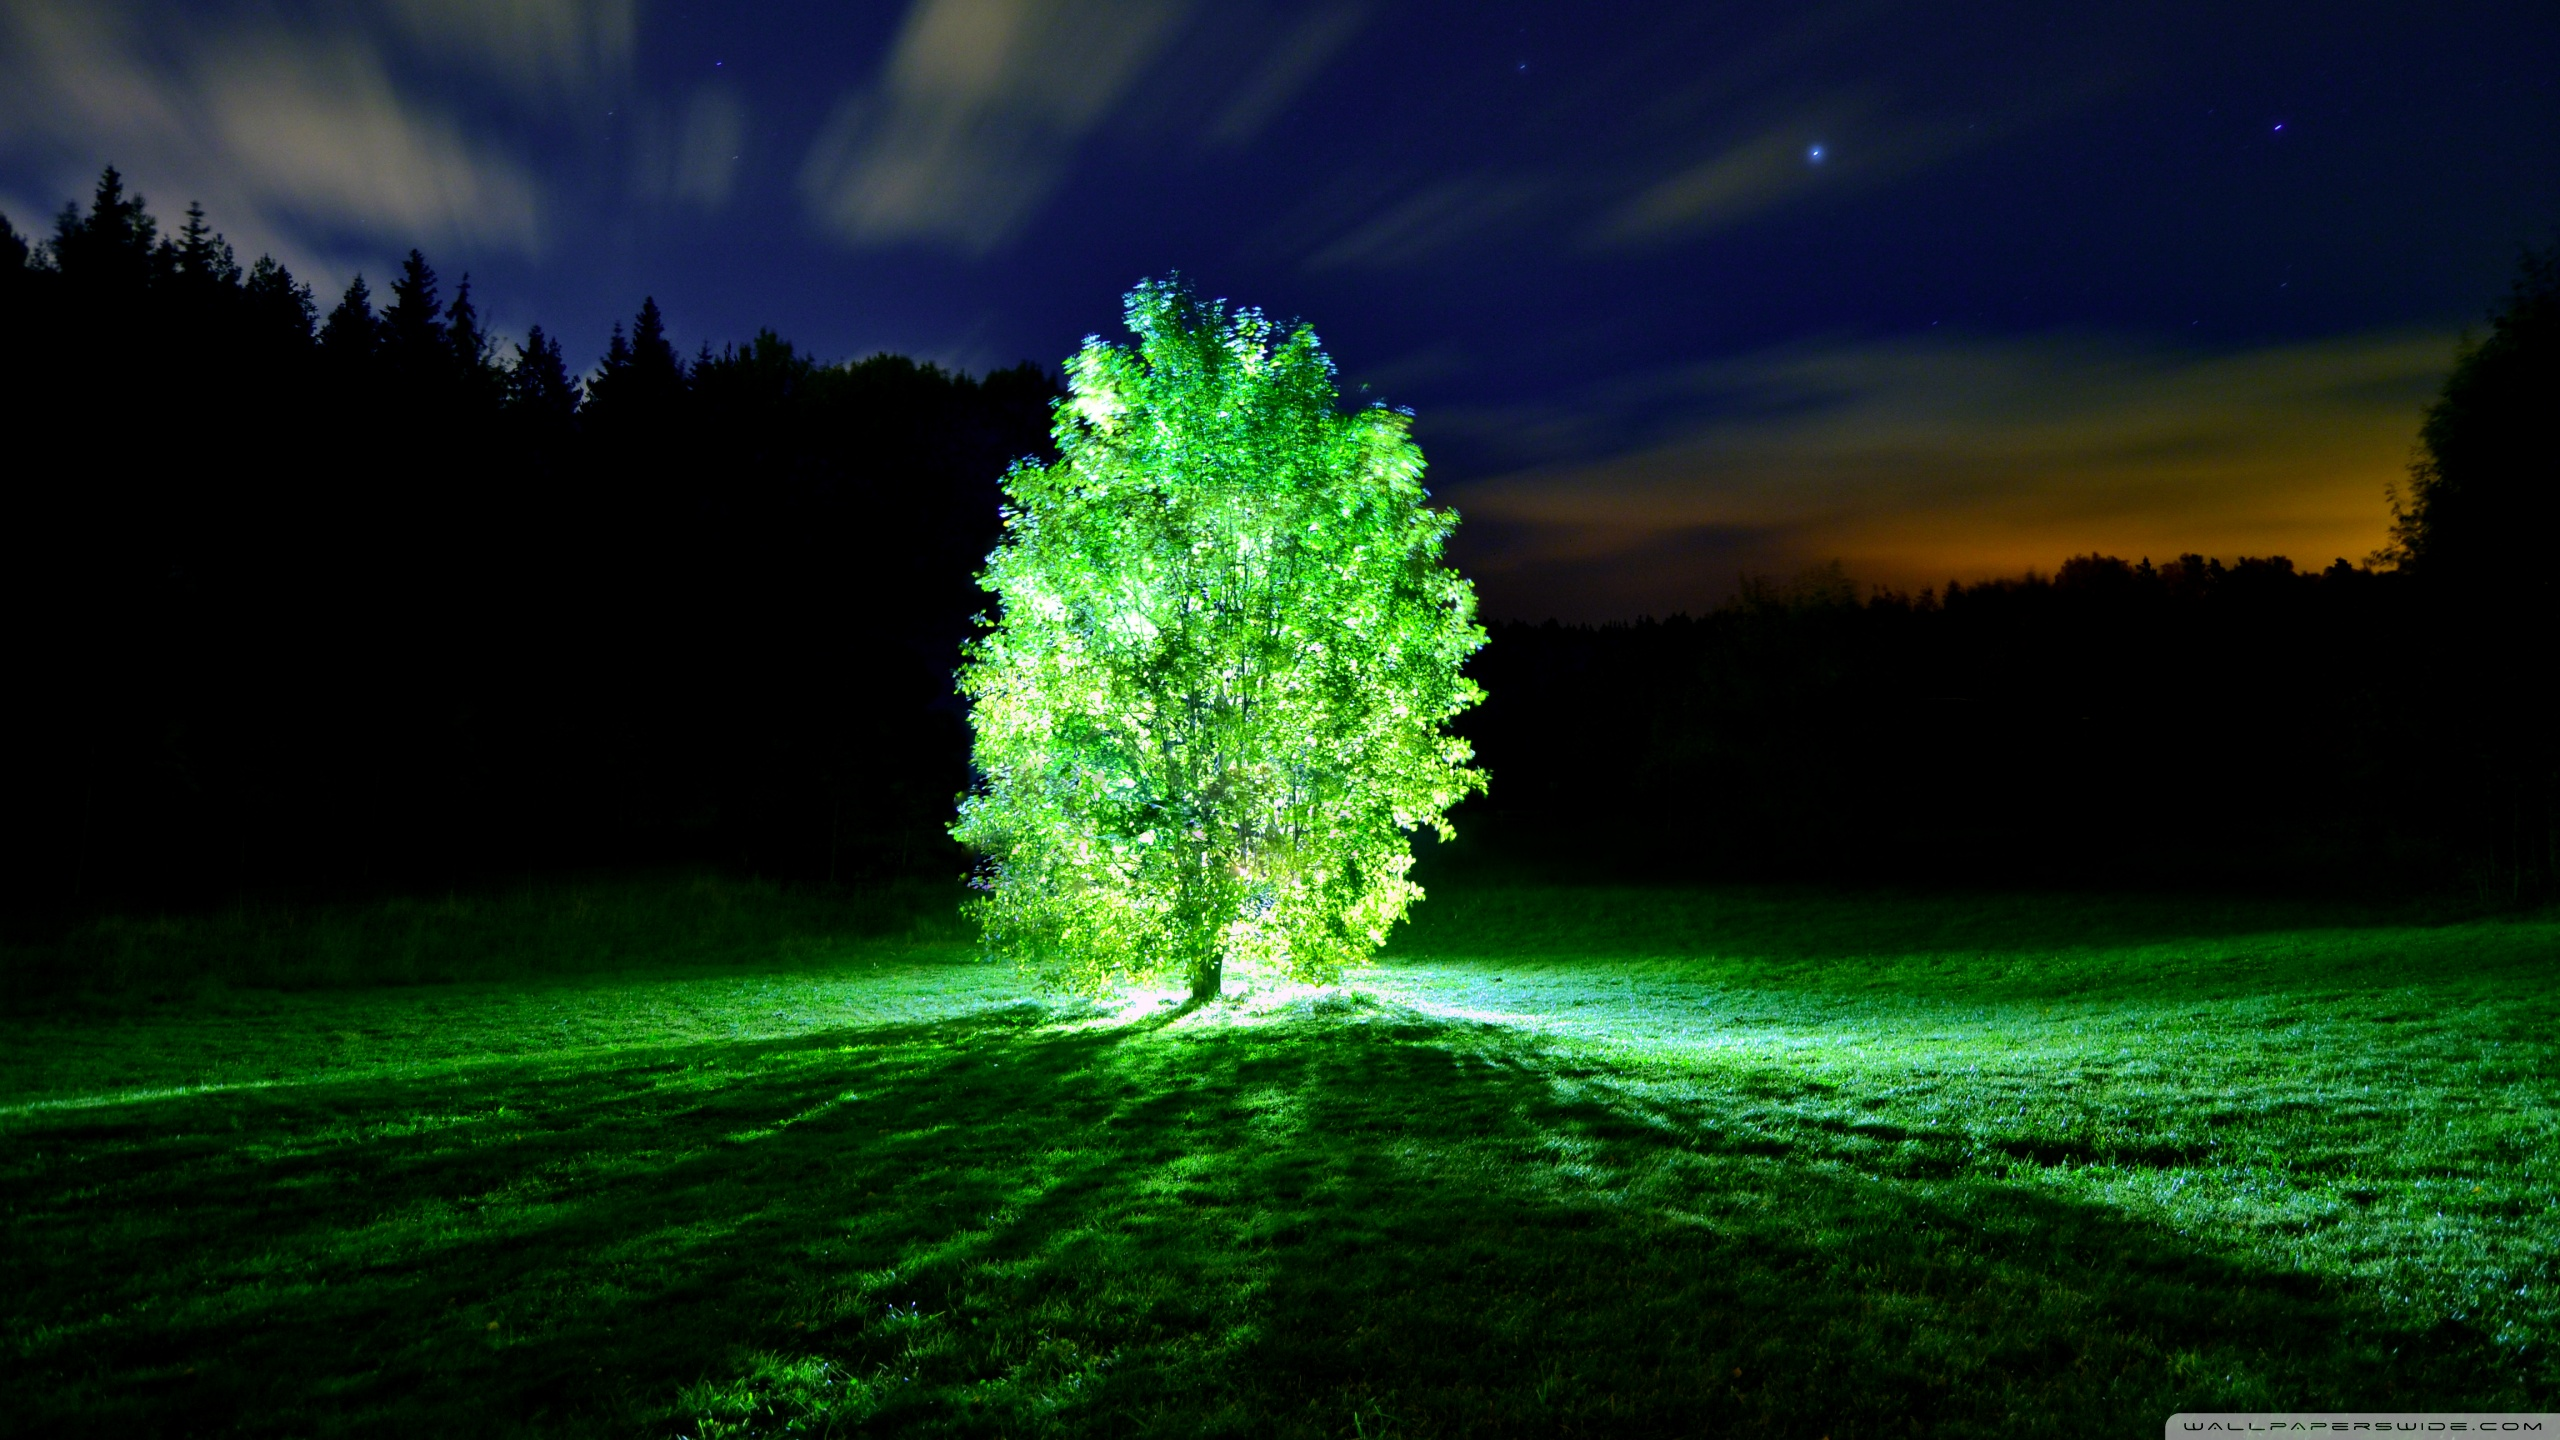 glowing_tree-wallpaper-2560x1440